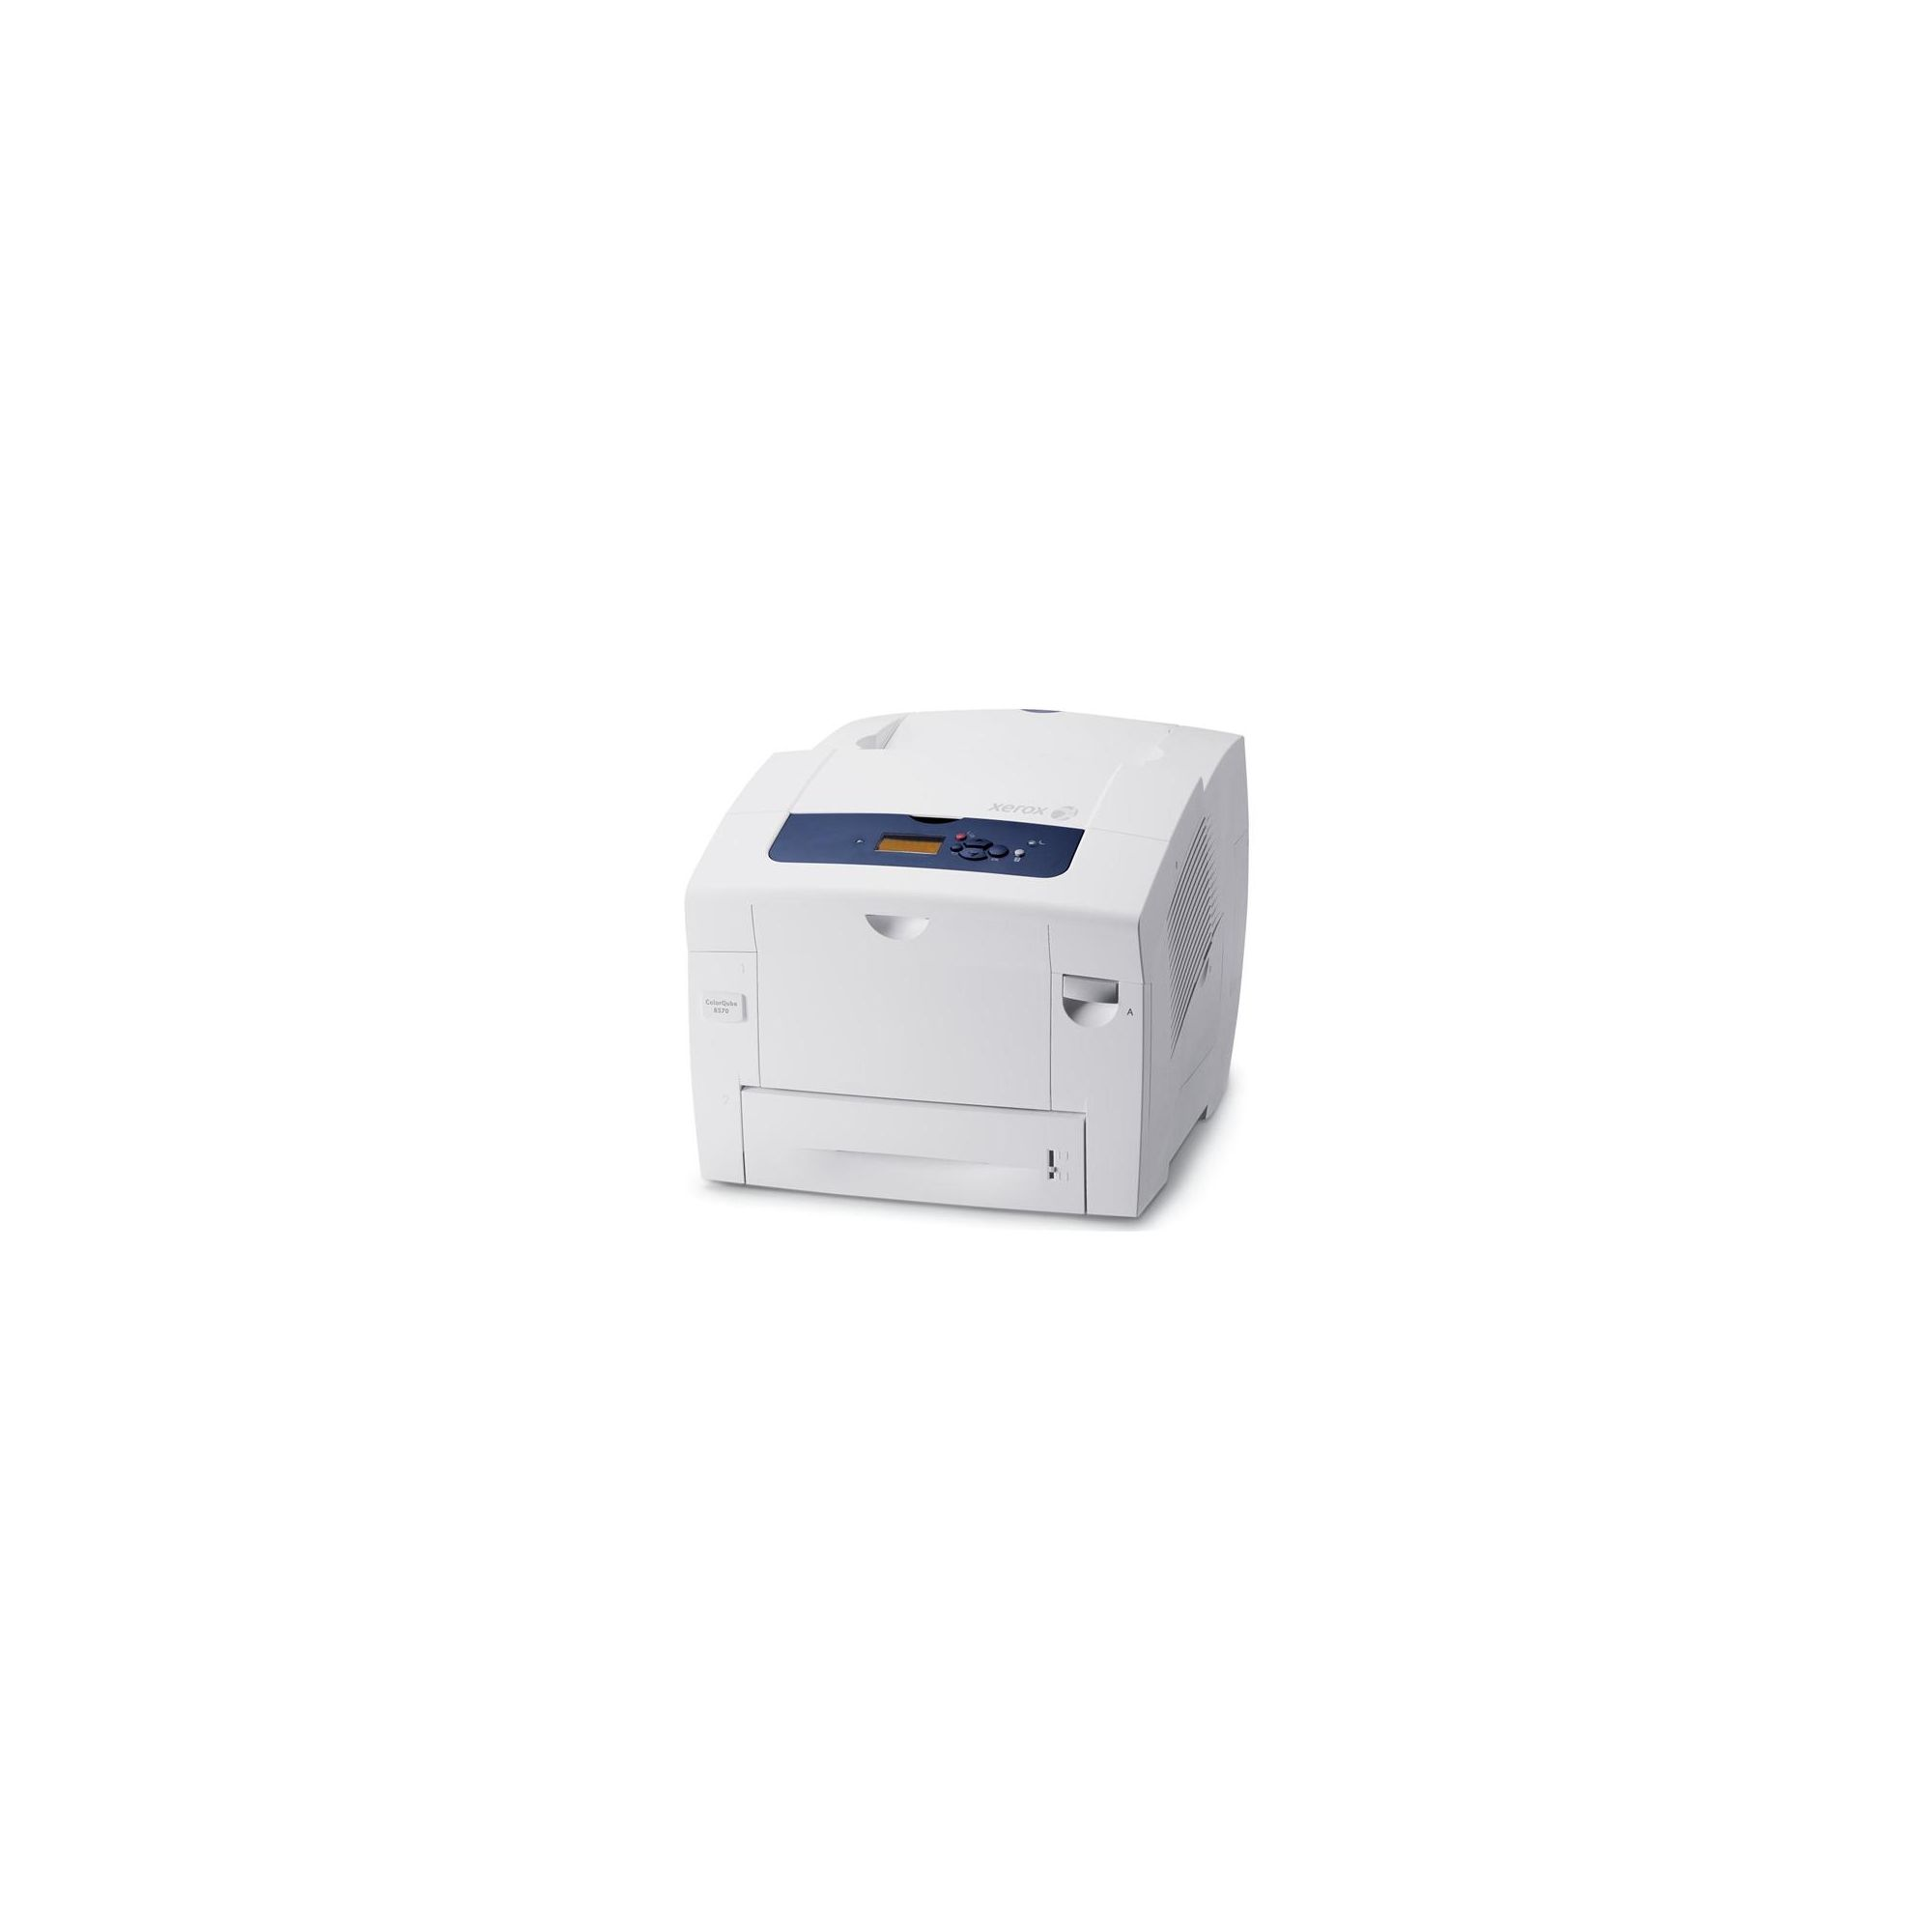 Xerox ColorQube 8570 (A4) USB Solid Ink Colour Printer (Base Model + Network Ready + Duplexer + Page Pack) CBID:672924 at Tesco Direct